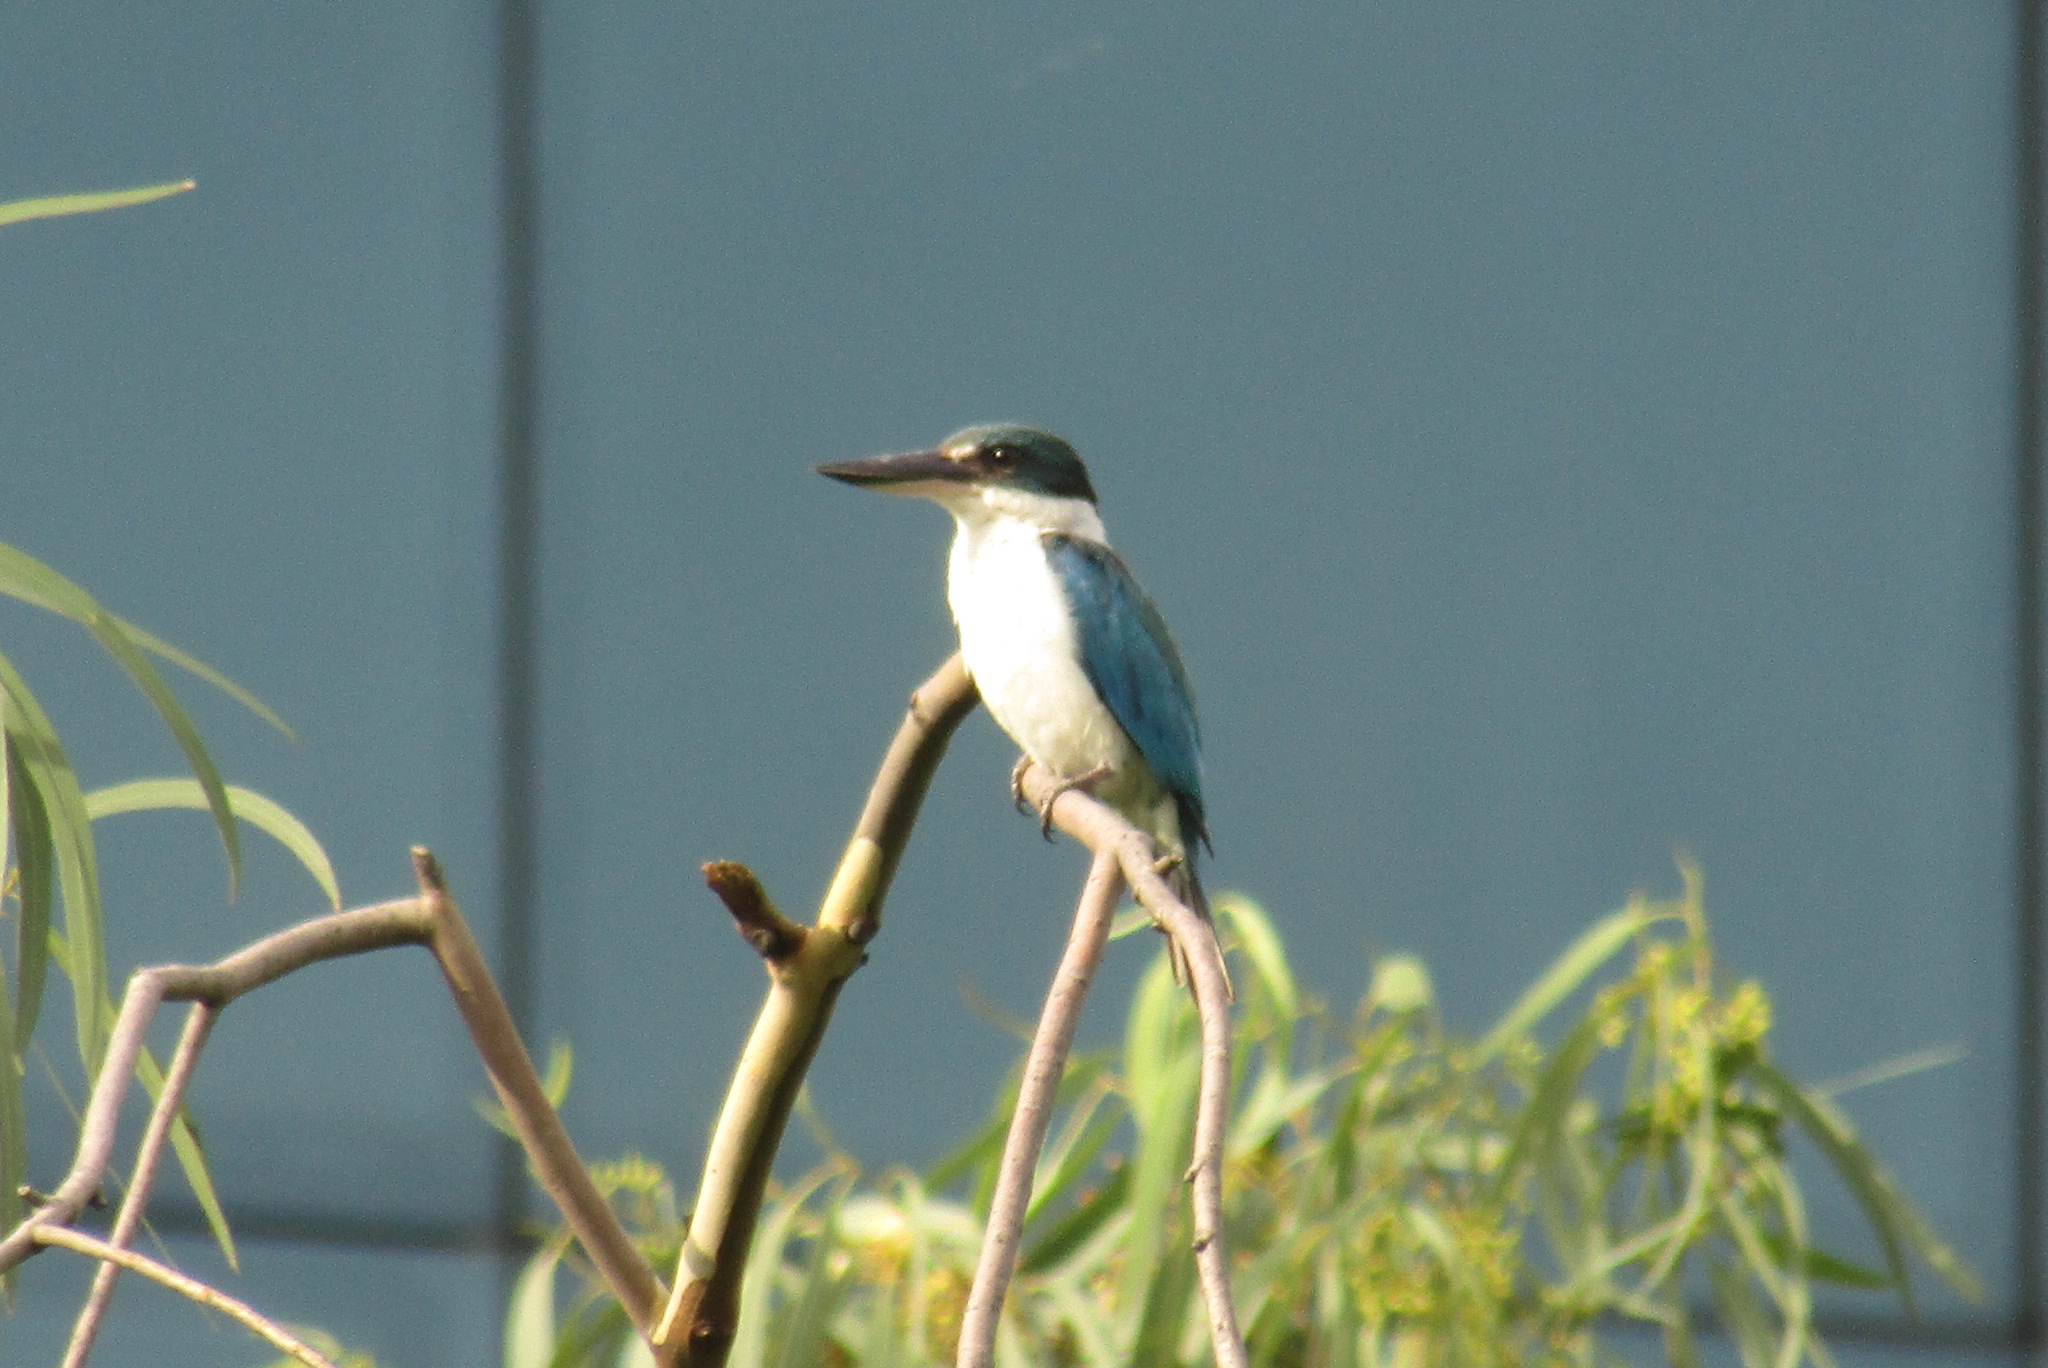 White-collared Kingfisher - A folk belief says that hearing the Kingfisher's call bodes ill - not for the one who hears it directly, but in a complicated, roundabout way, for people that they know but aren't very close to.